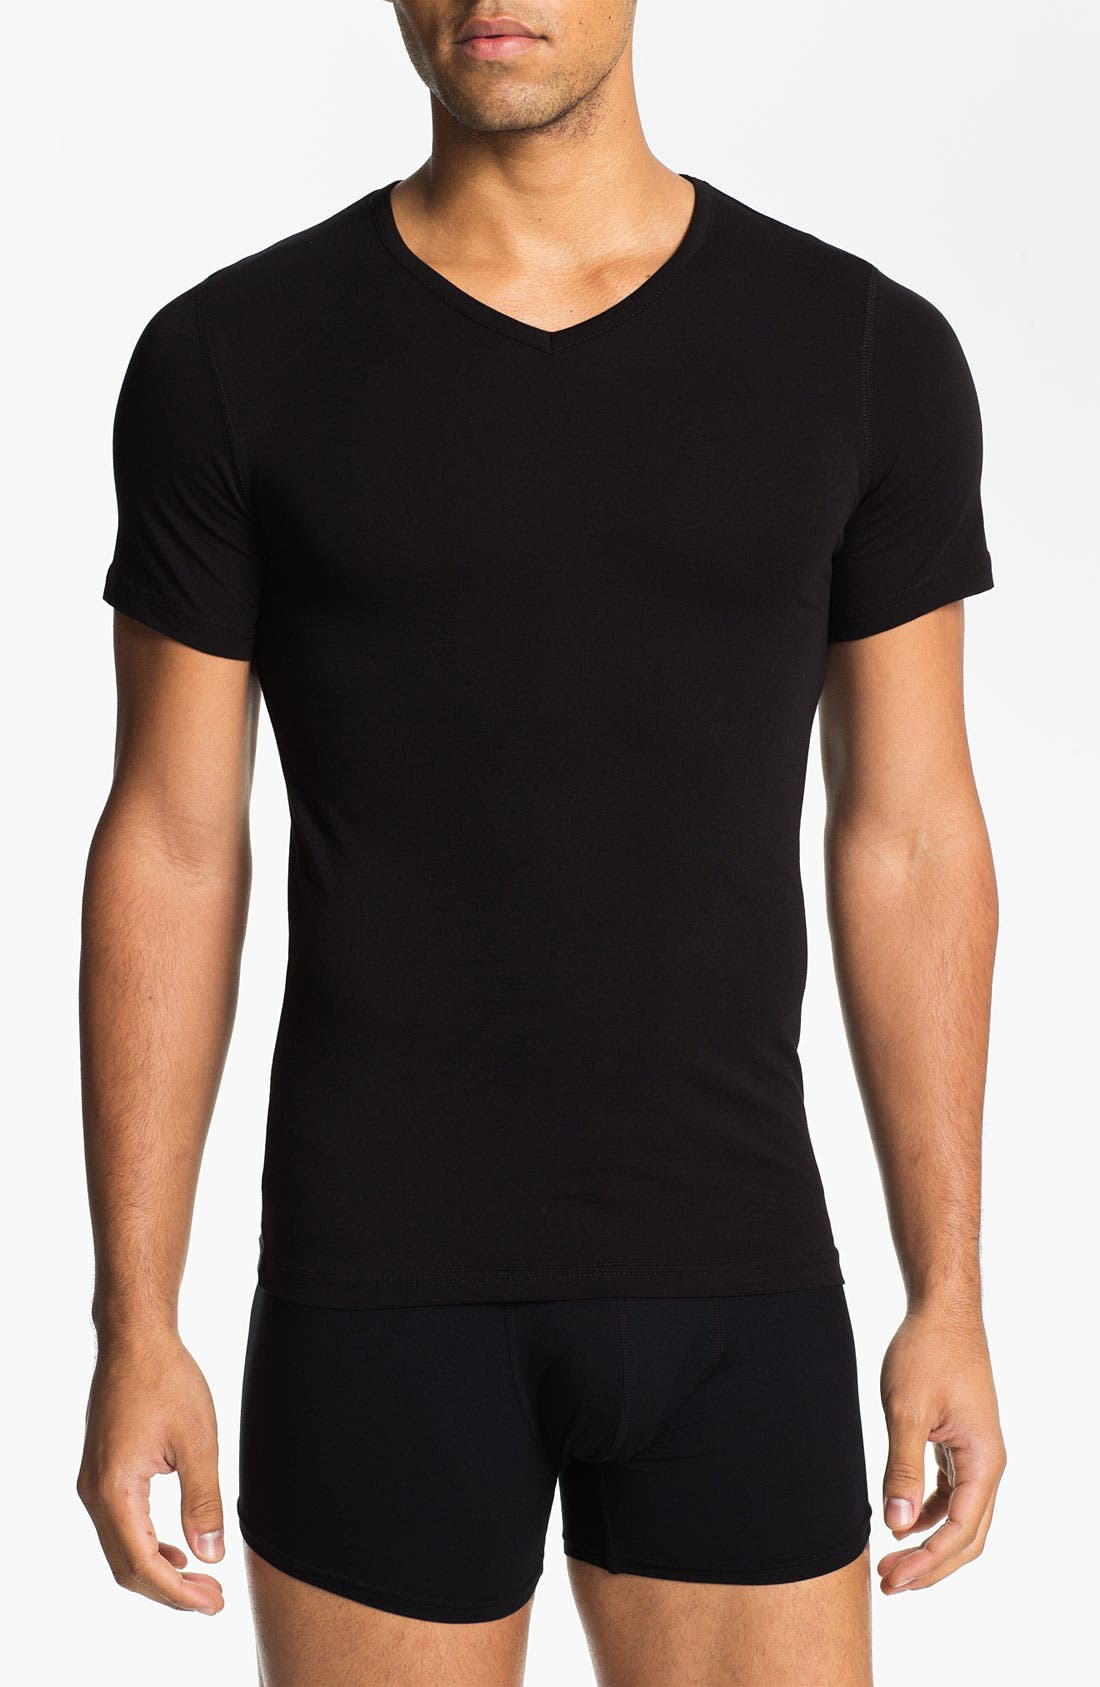 Main Image - Naked V-Neck Cotton Undershirt